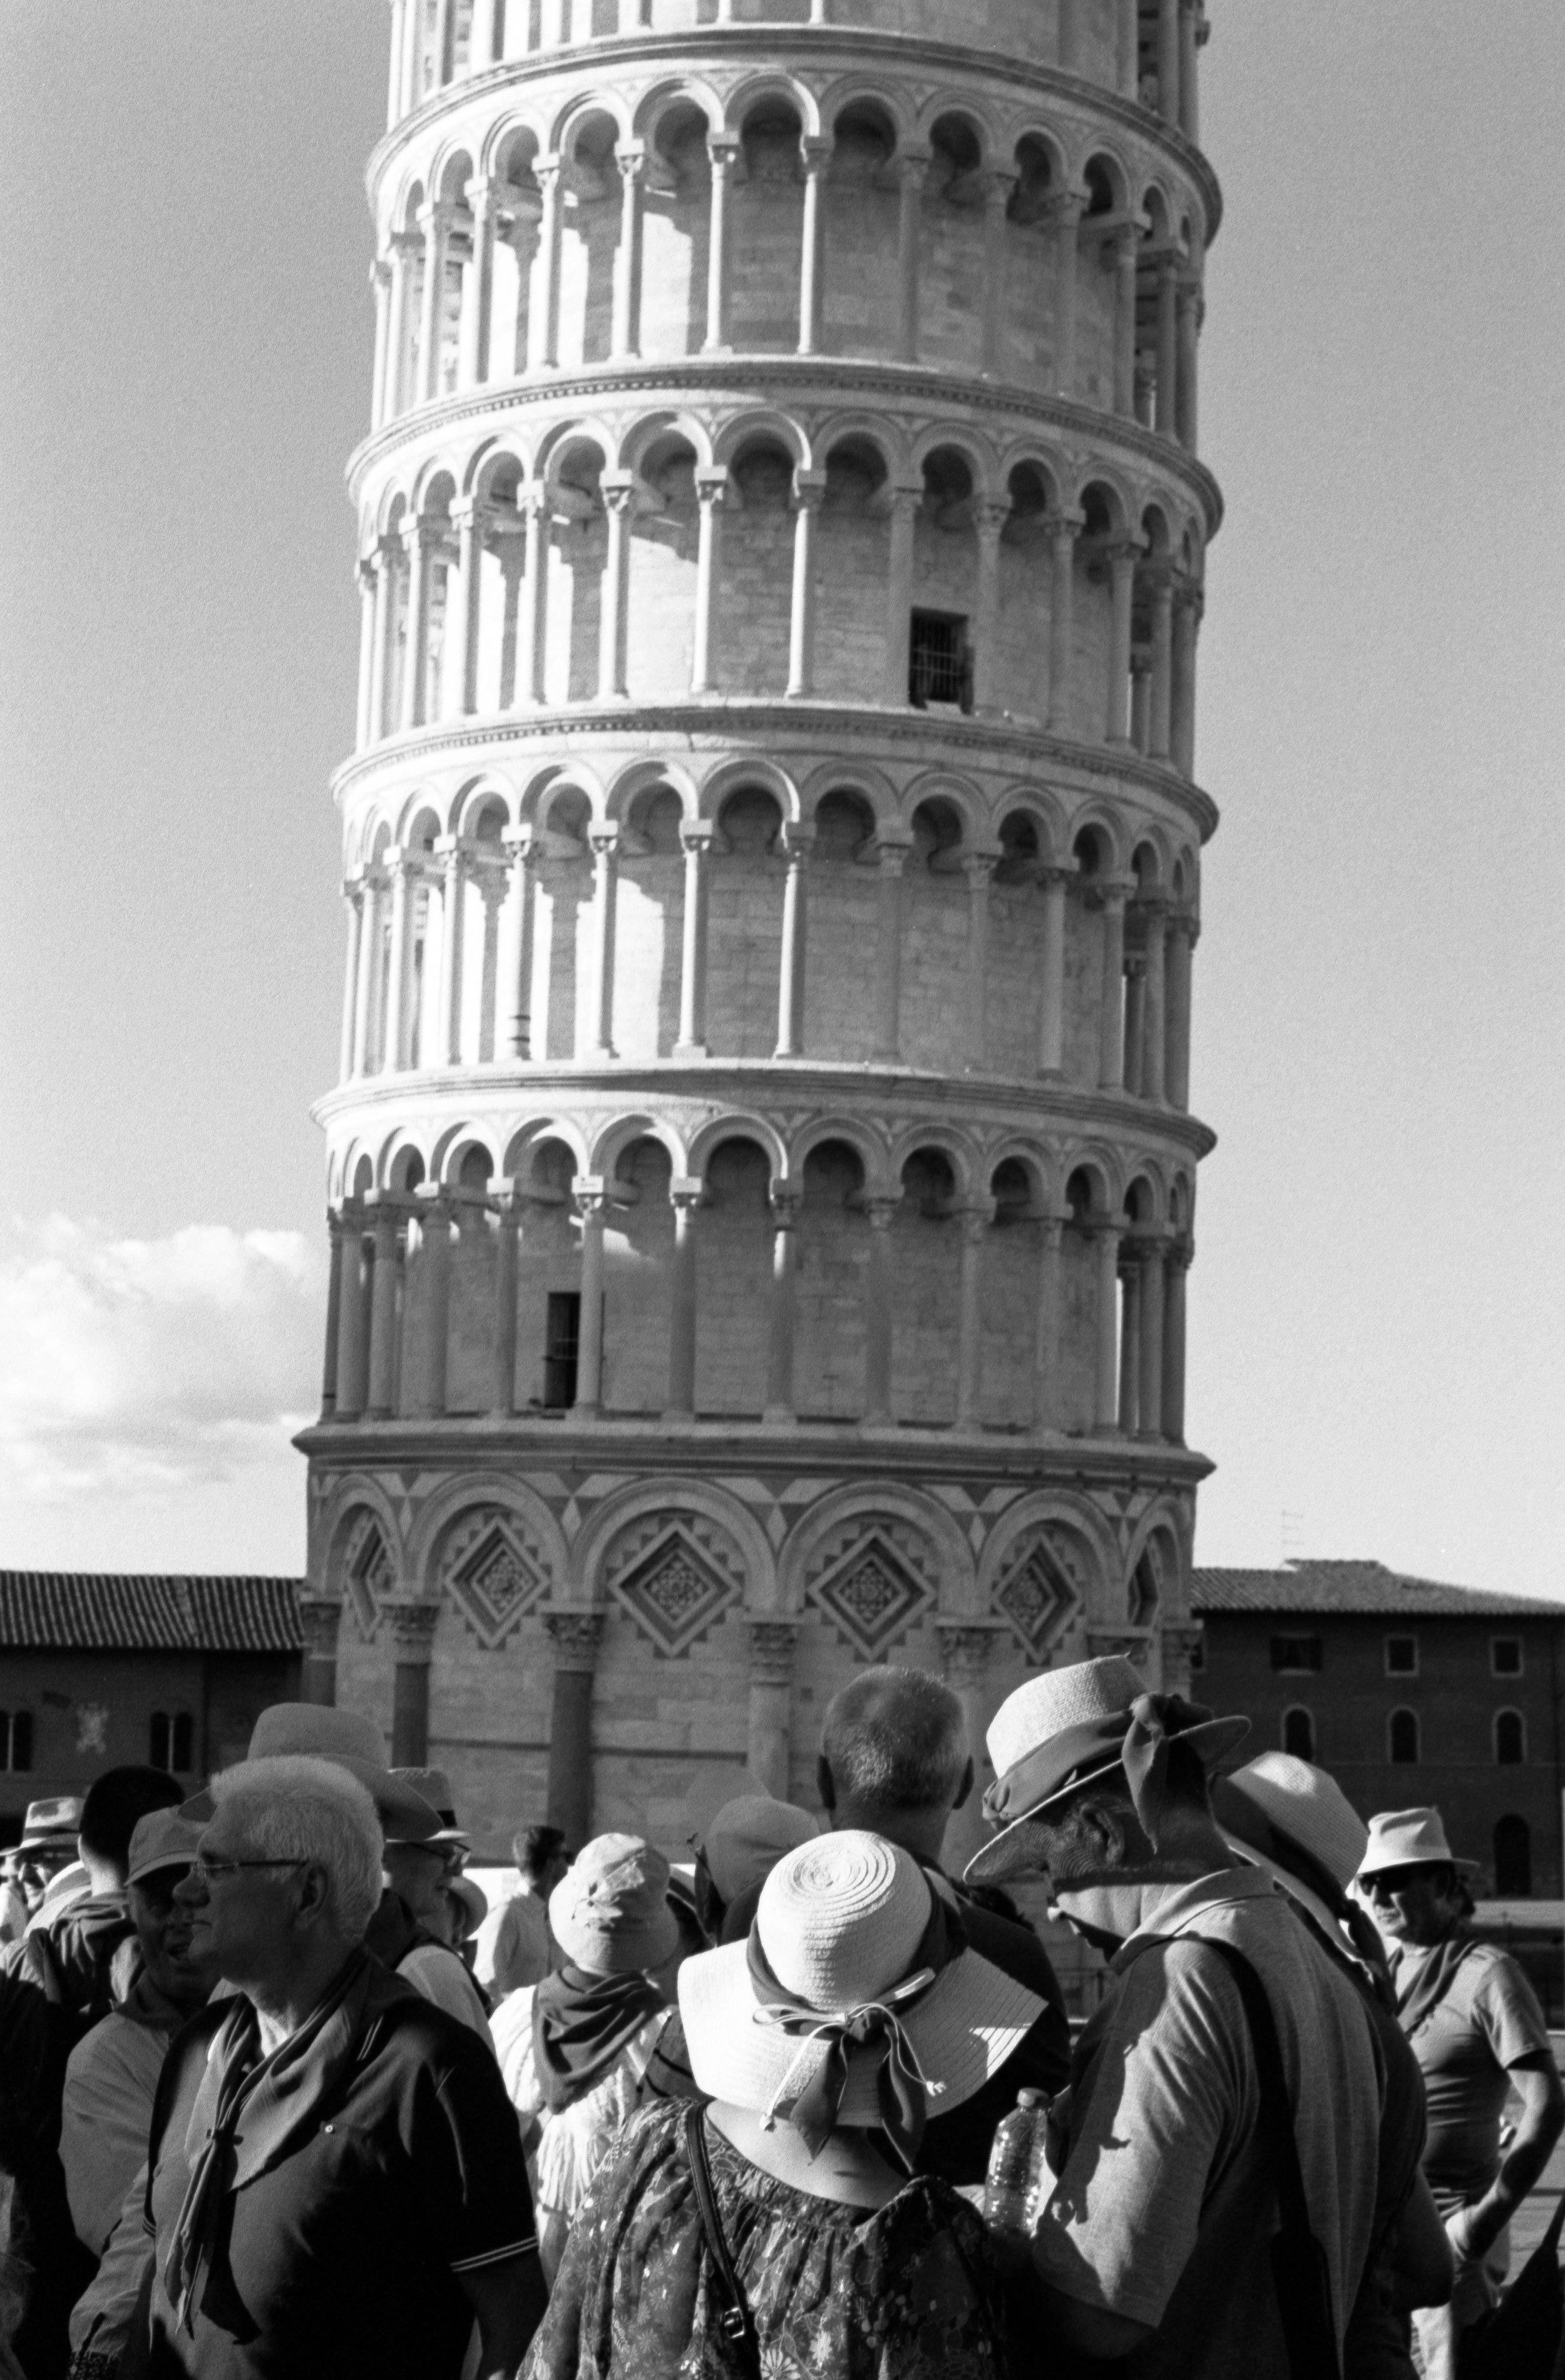 The Leaning Tower, Pisa. Italy. 2018.